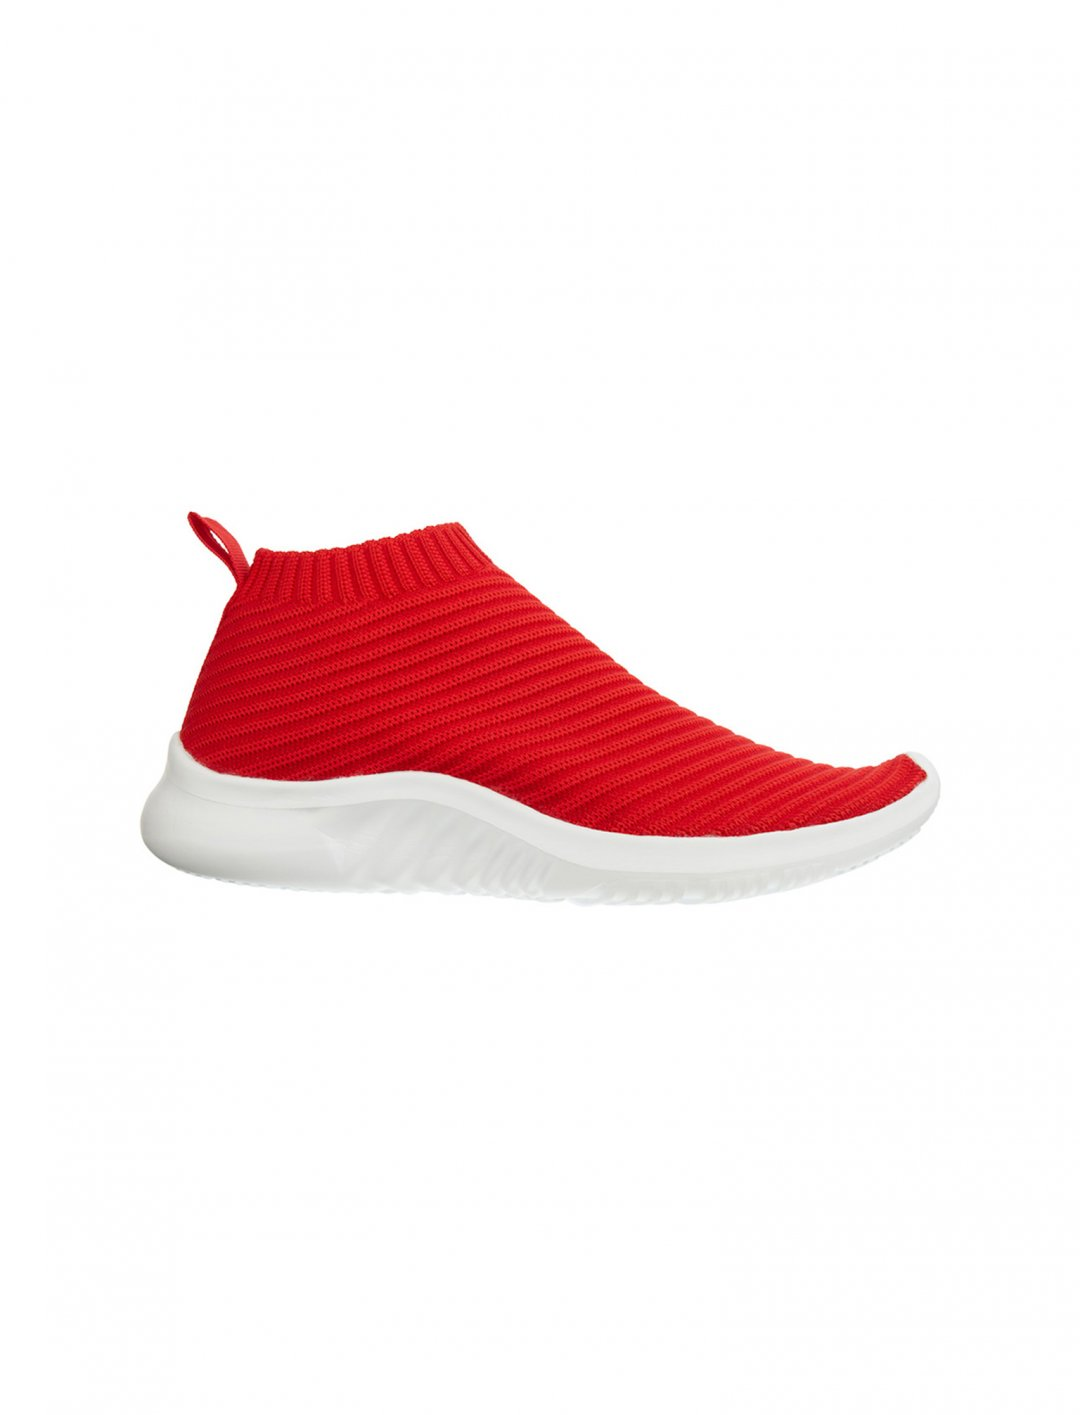 "Asos Sock Trainers {""id"":12,""product_section_id"":1,""name"":""Shoes"",""order"":12} Asos"